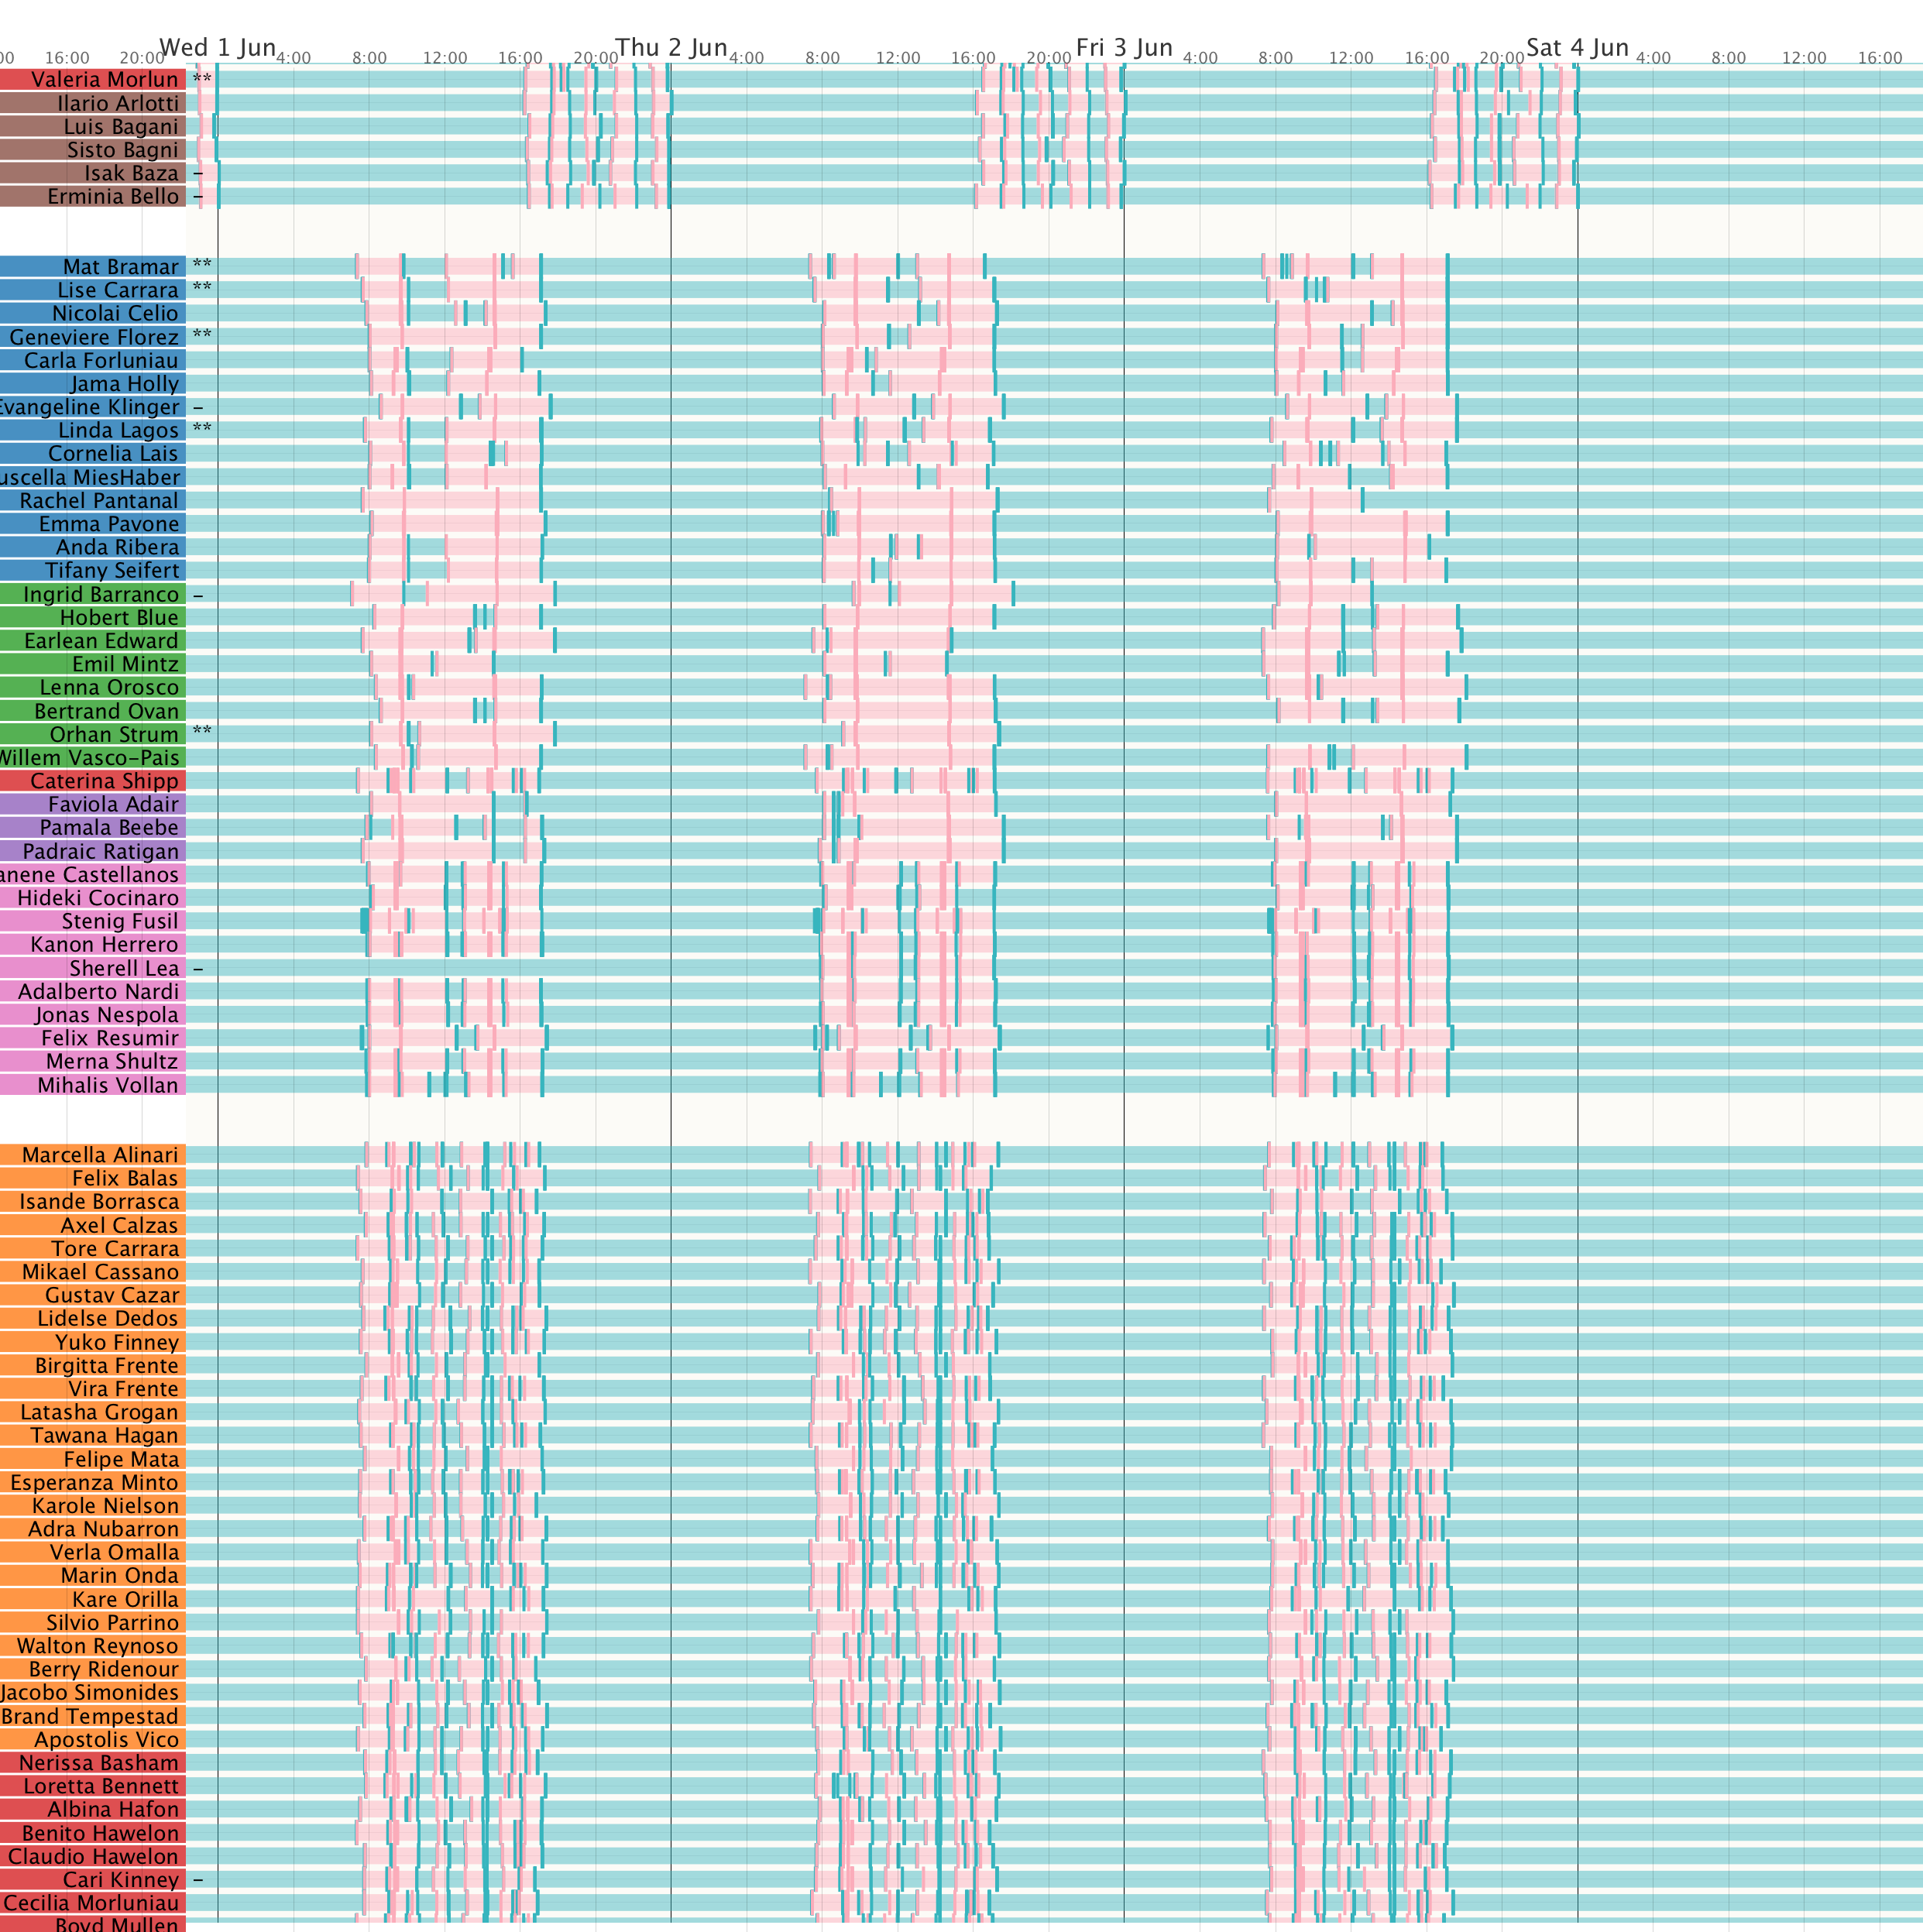 Figure 2.  Zoomed in detail of prox card entry view showing typical patterns during the day.Employees symbolised with a '–' indicate note attached to their record and '**' a note with an alert identifying issue of concern.  (click image for full size).